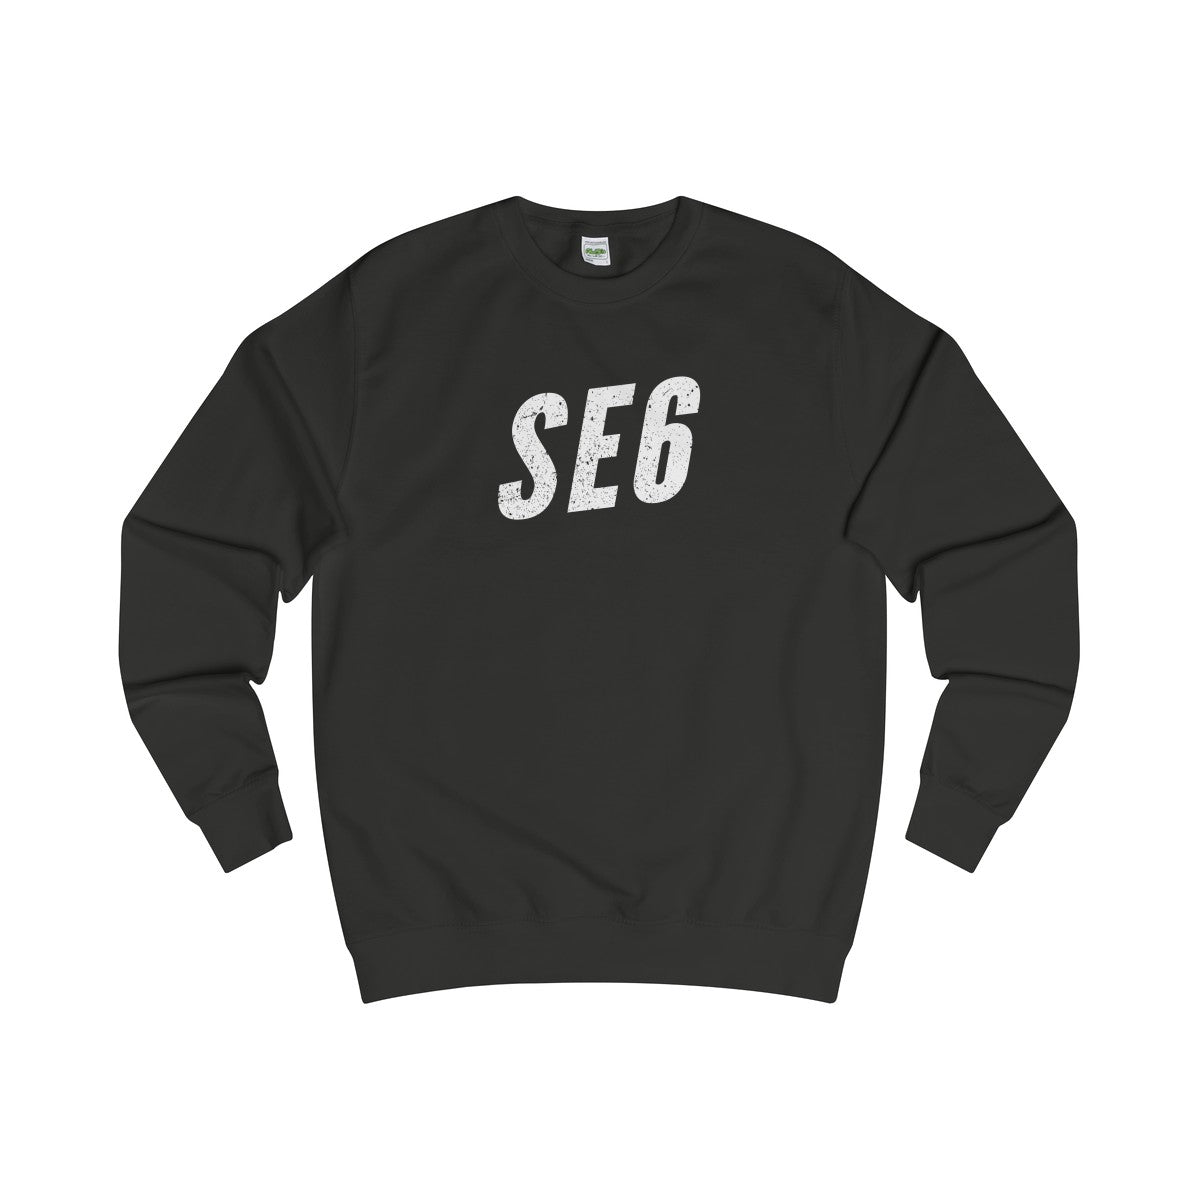 Hither Green SE6 Sweater